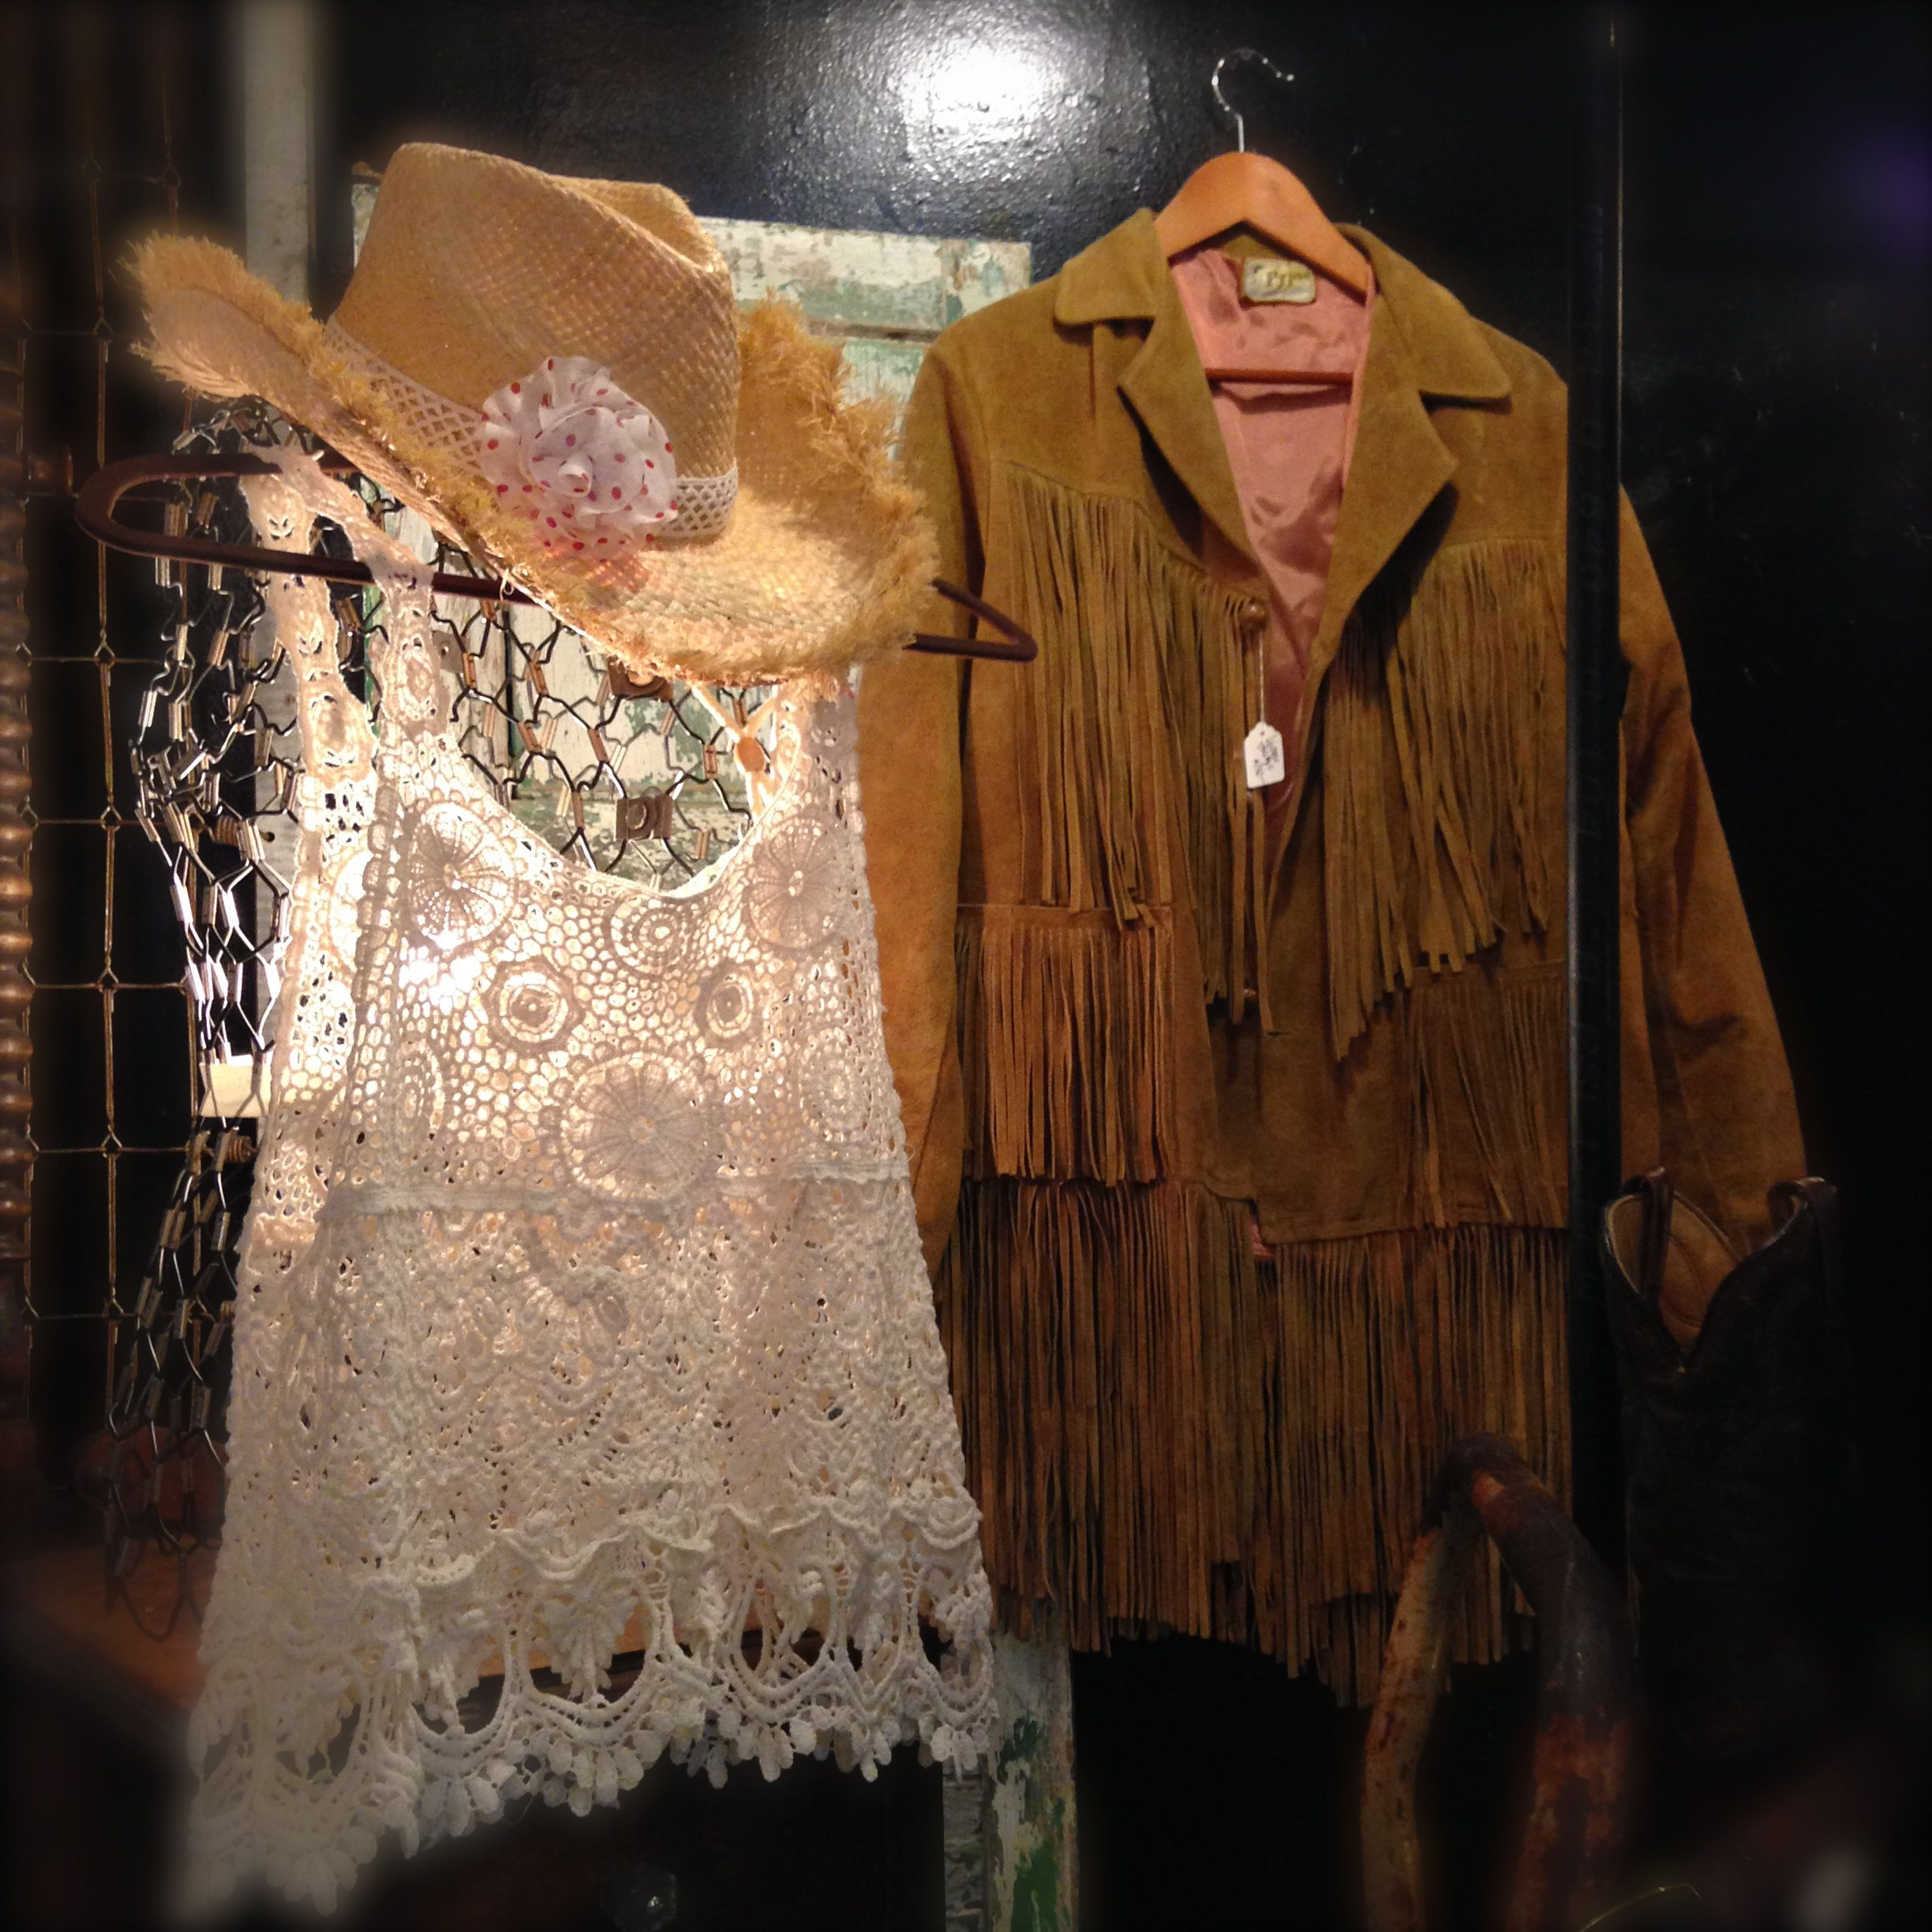 Leather and lace www.zen-cowgirl.com #zencowgirl #fringe #lacetank